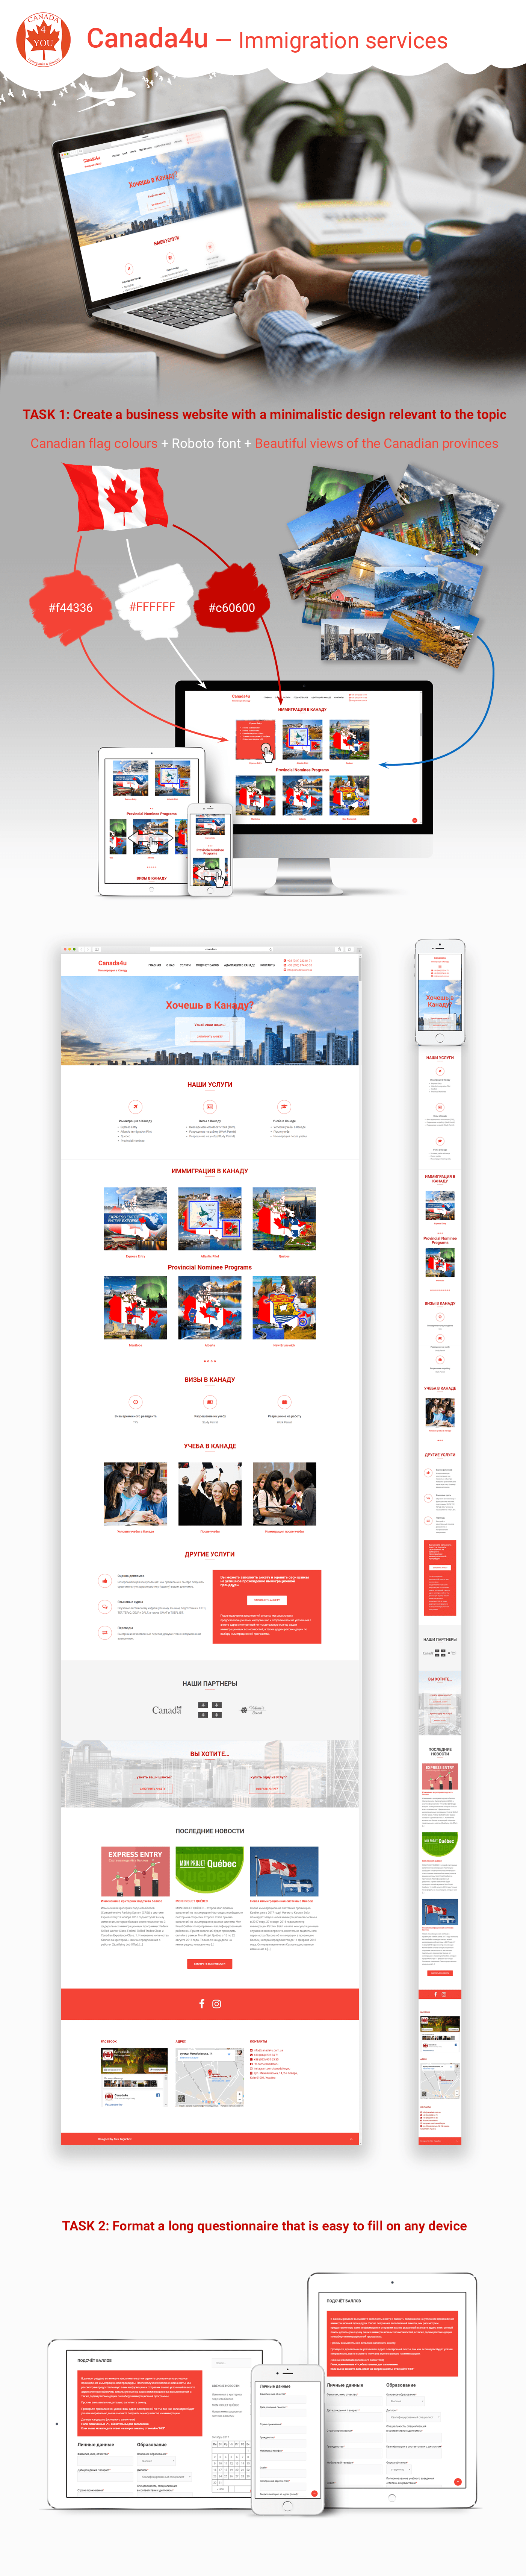 landing page,questionnaire,Website,Canada,Immigration Services